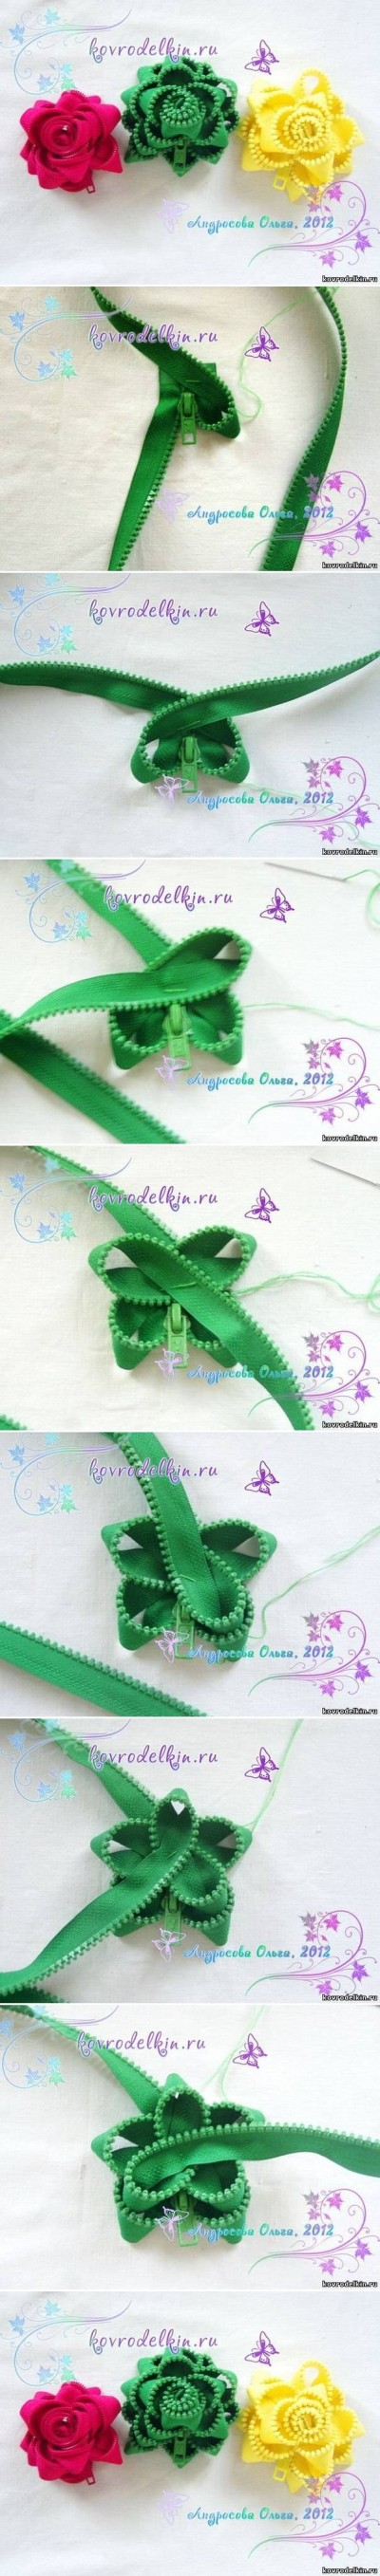 How to make Simple Zipper Flower Brooch step by step DIY tutorial instructions